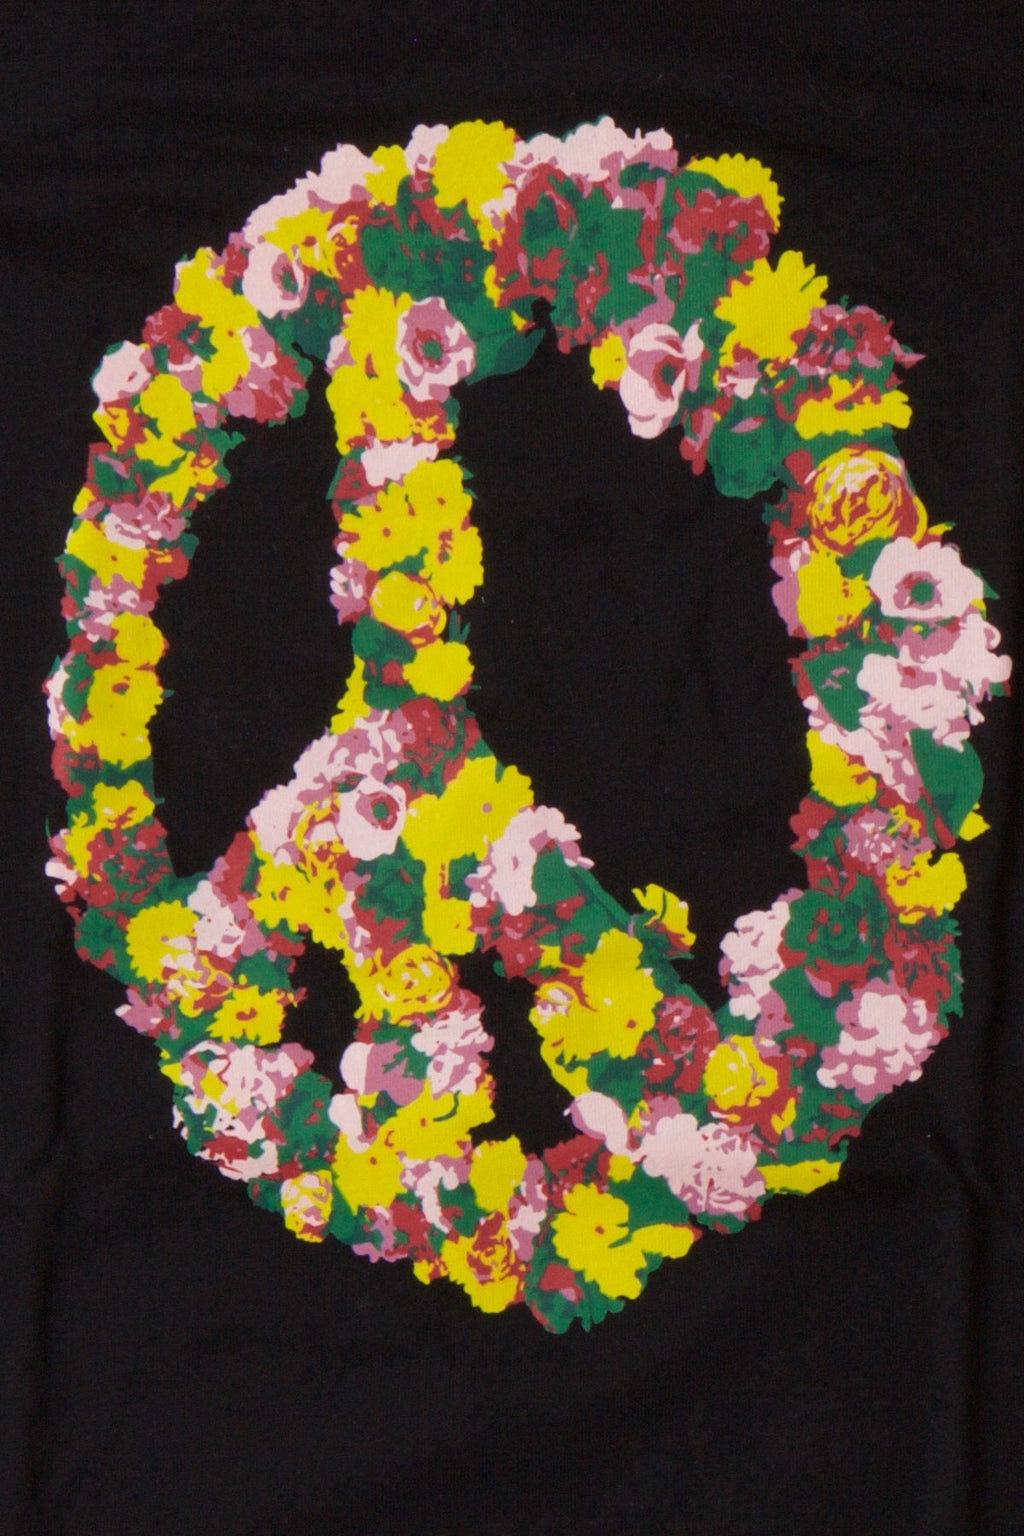 Detail Of Flowers In A Peace Sign Configuration On a Black TShirt